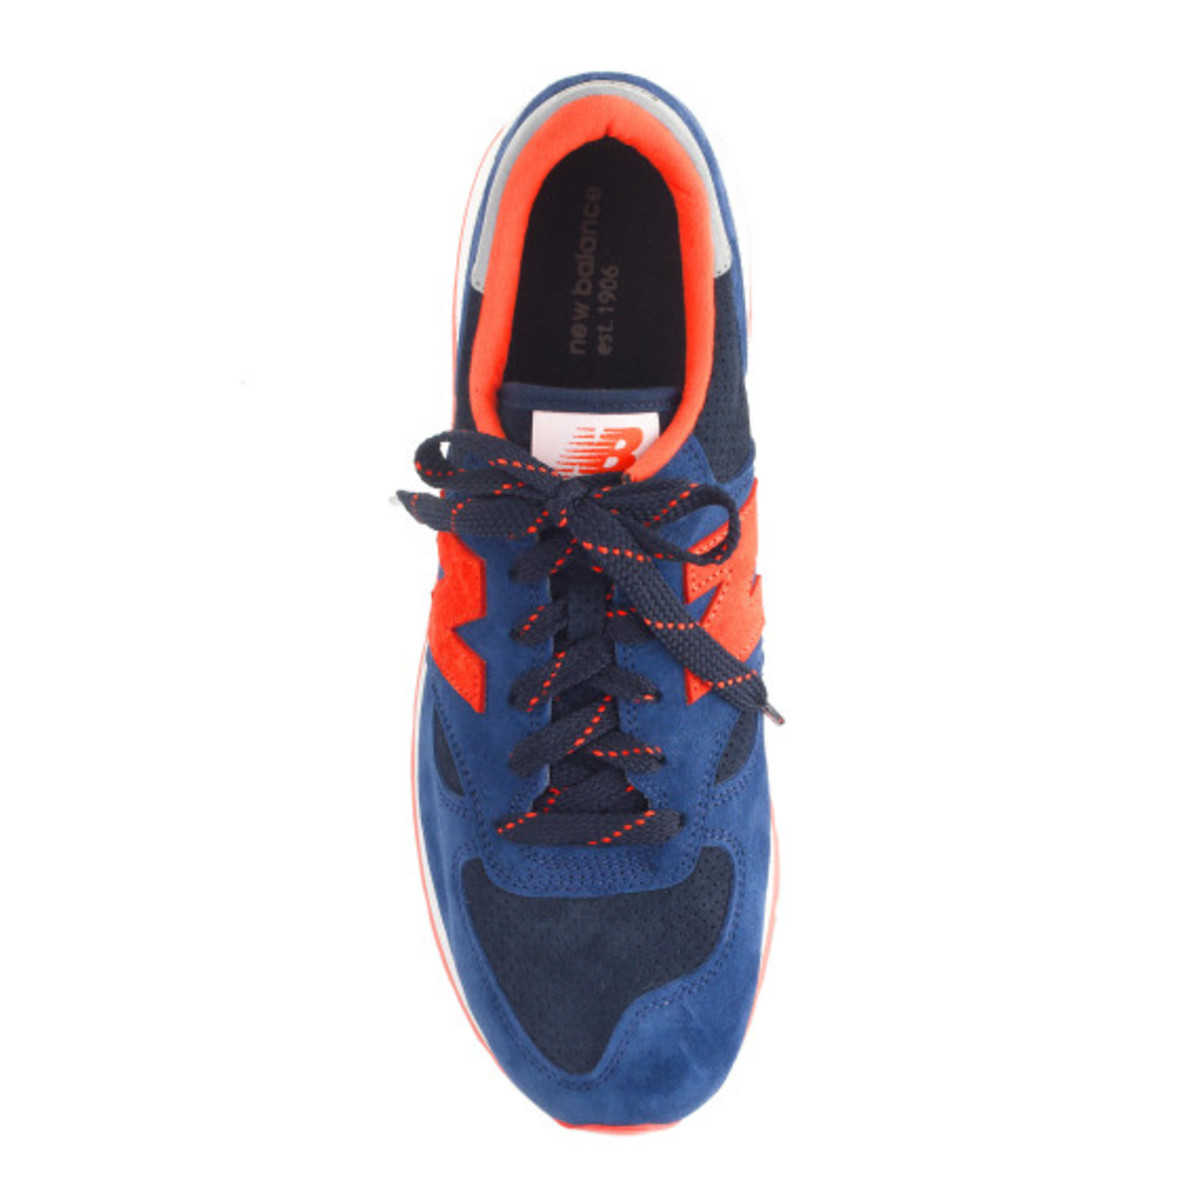 jcrew-new-balance-990-pack-available-now-07